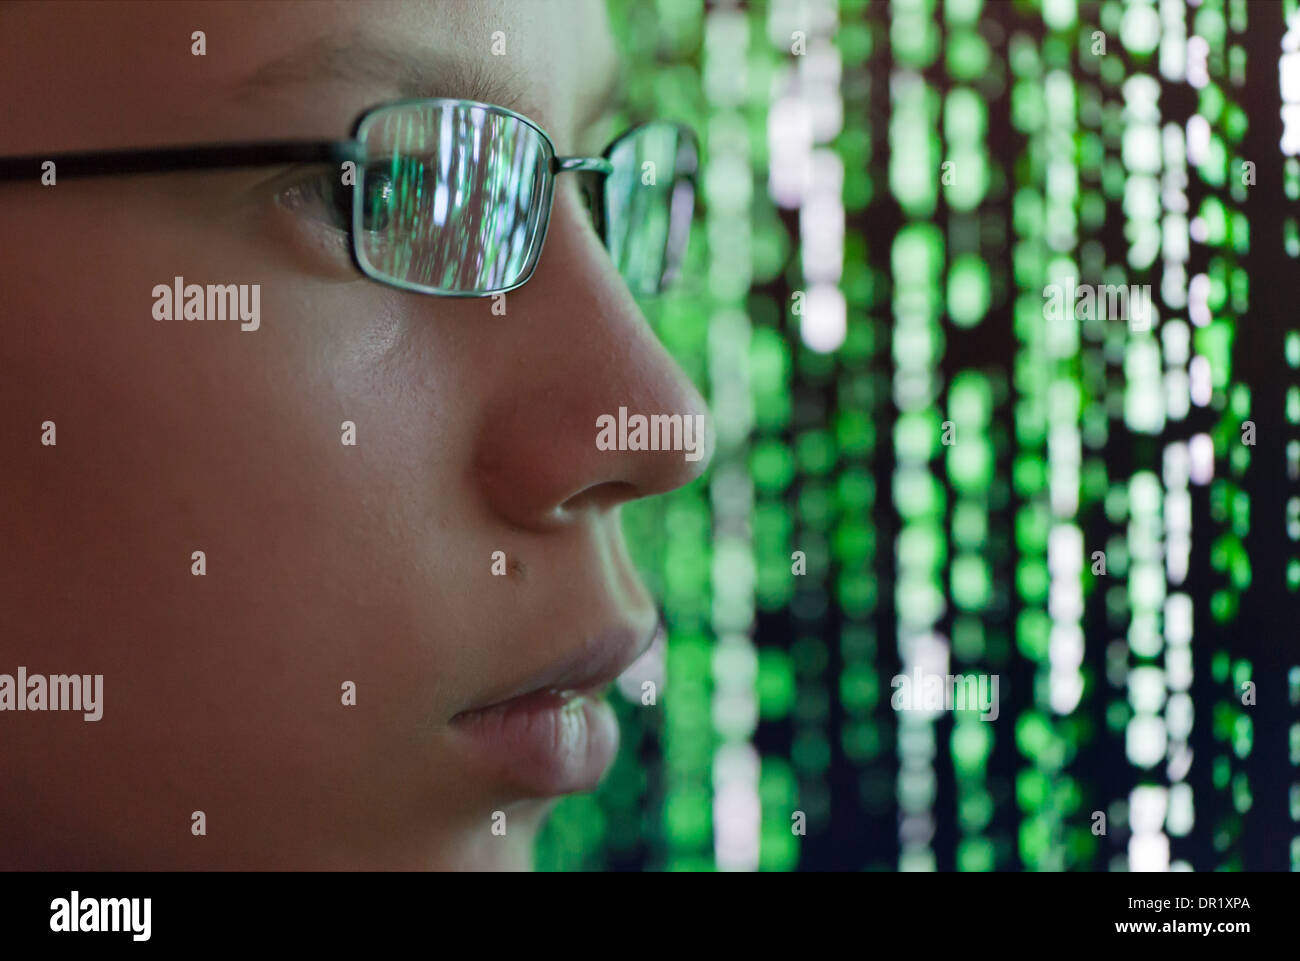 A young man with glasses is watching futuristic symbols on a computer screen. Symbols are reflecting in the man's Stock Photo